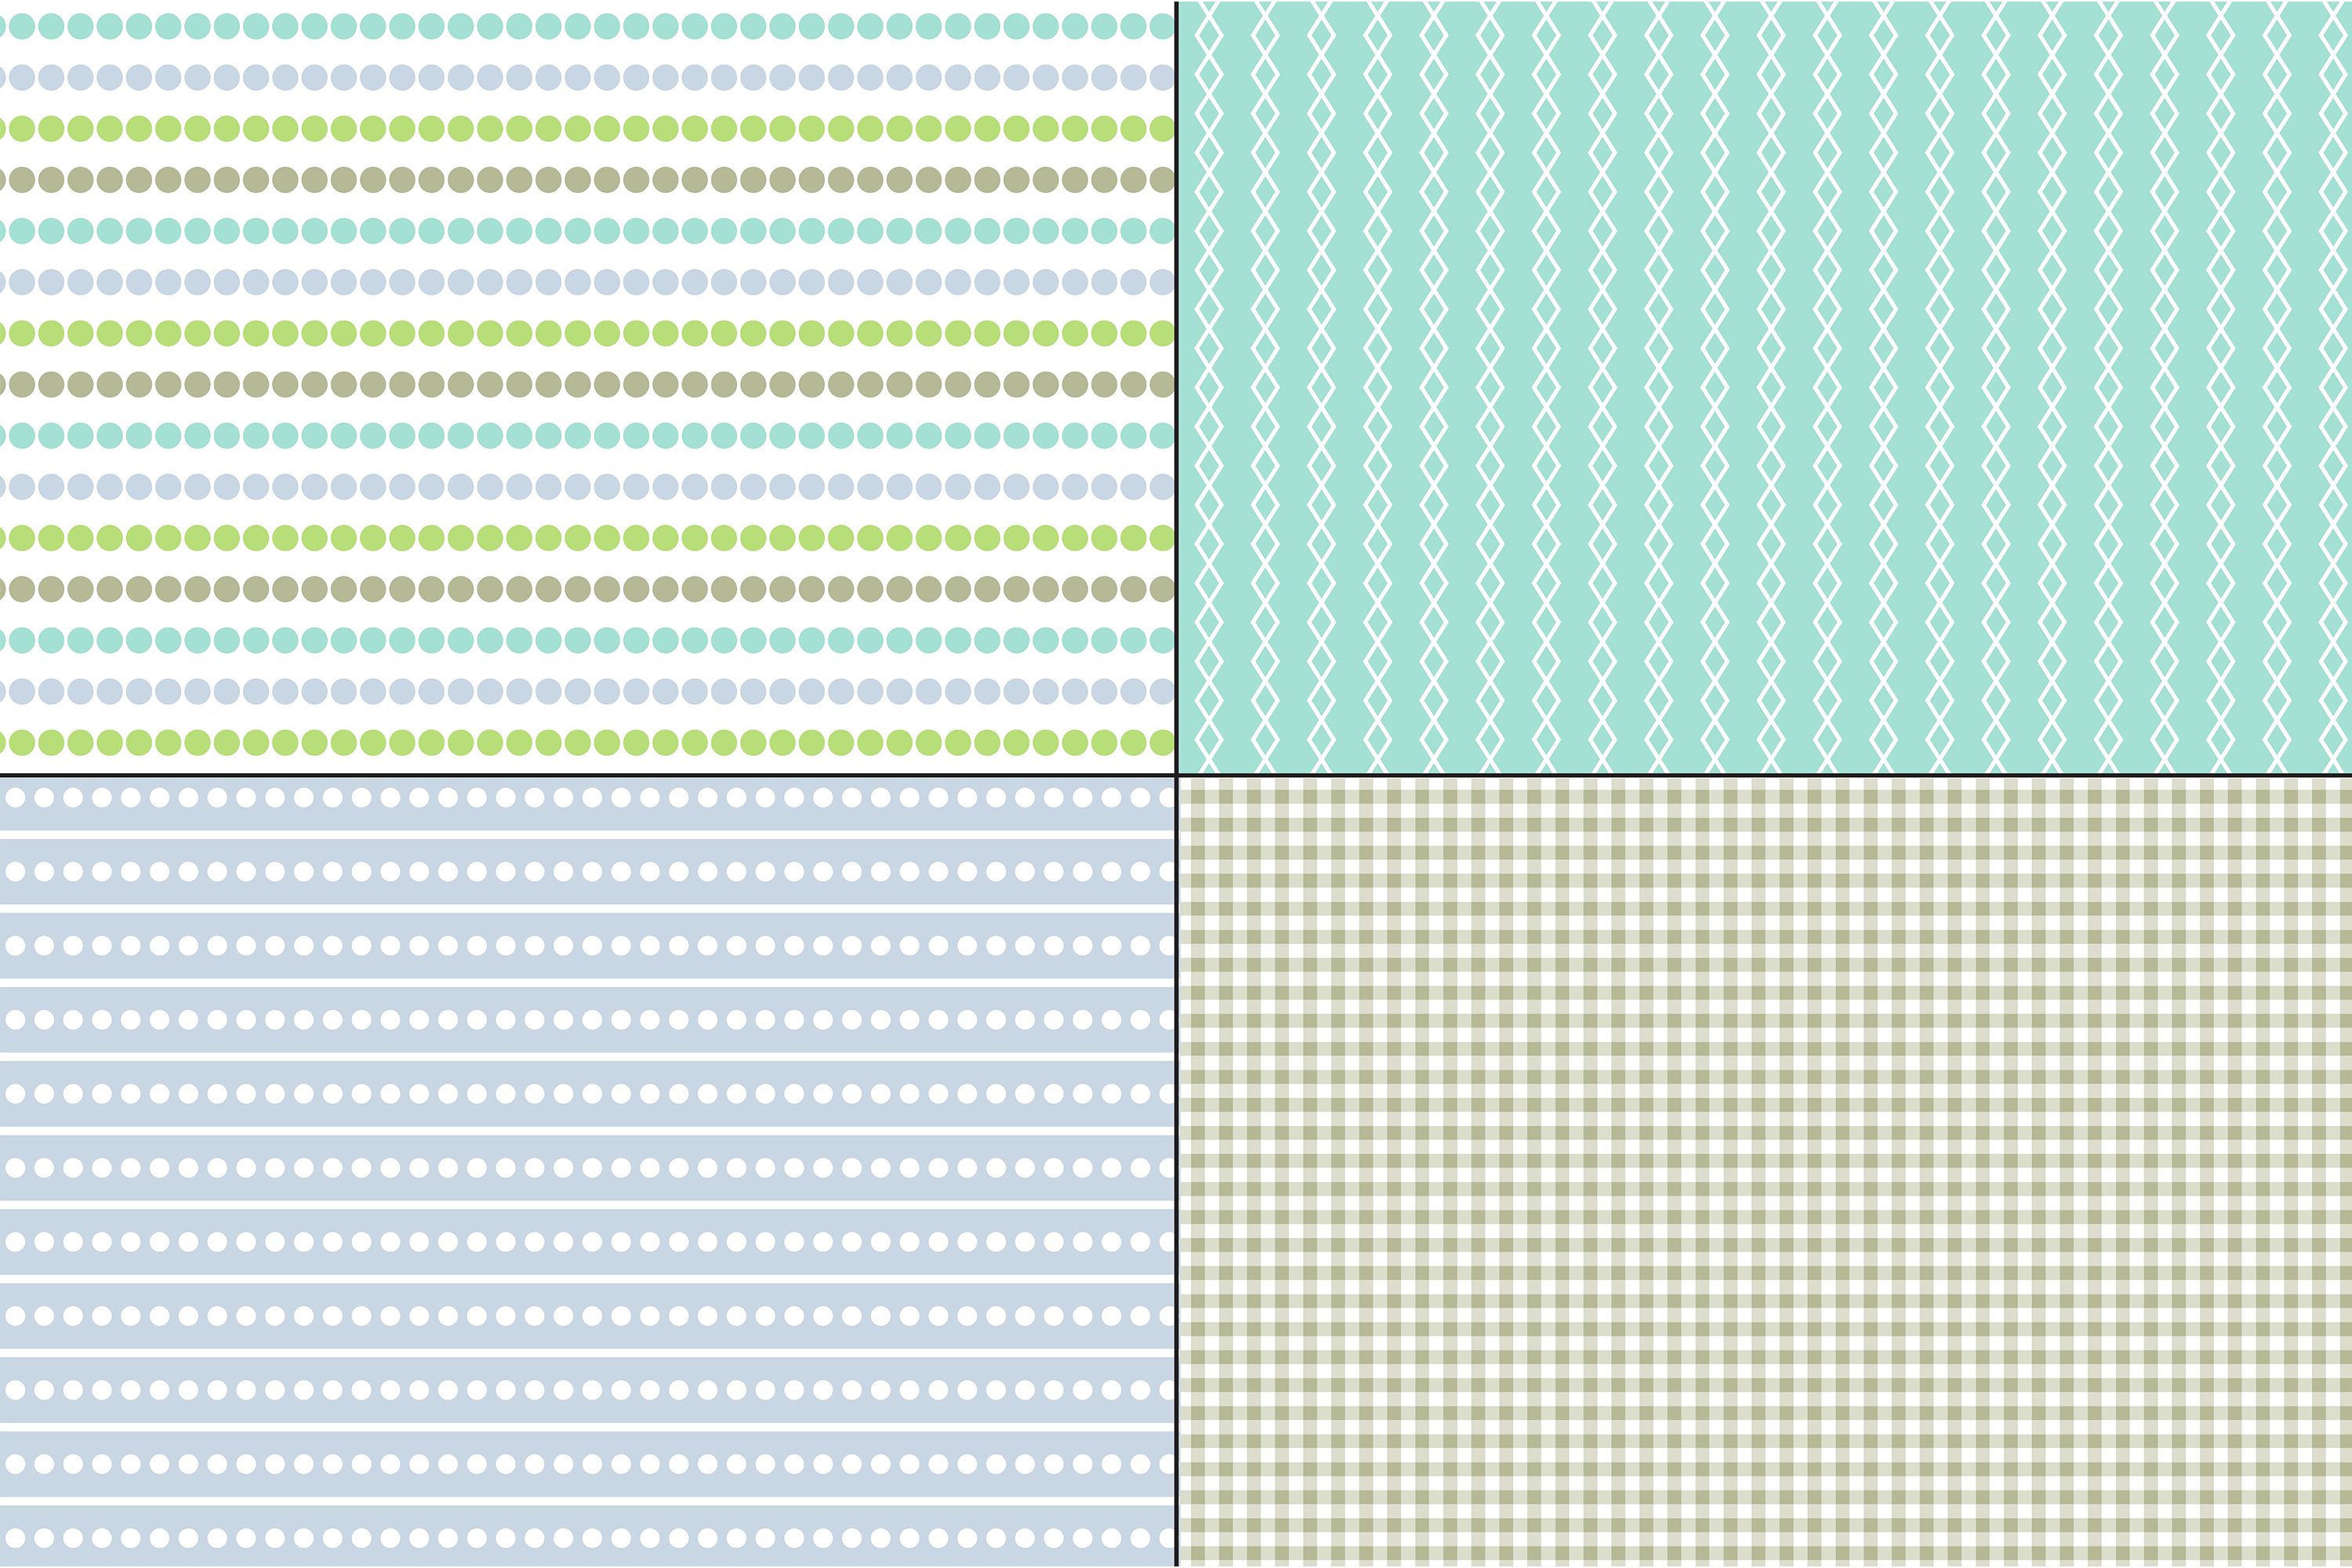 Blue Green Stripes & Plaids example image 4